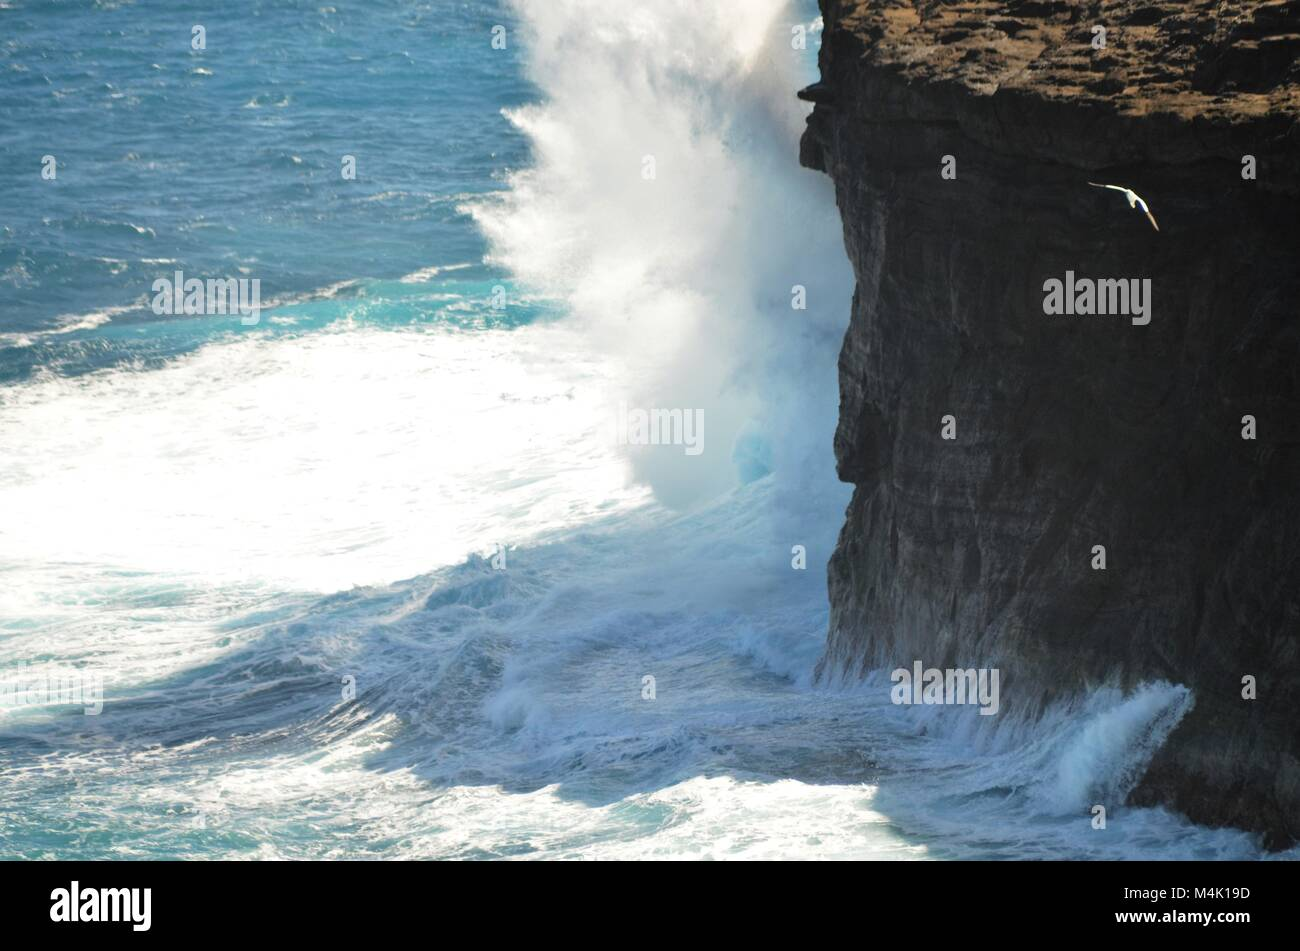 A rock cliff is being hit hard by the pounding forces of the sea, sending crashing waves up against the side of - Stock Image